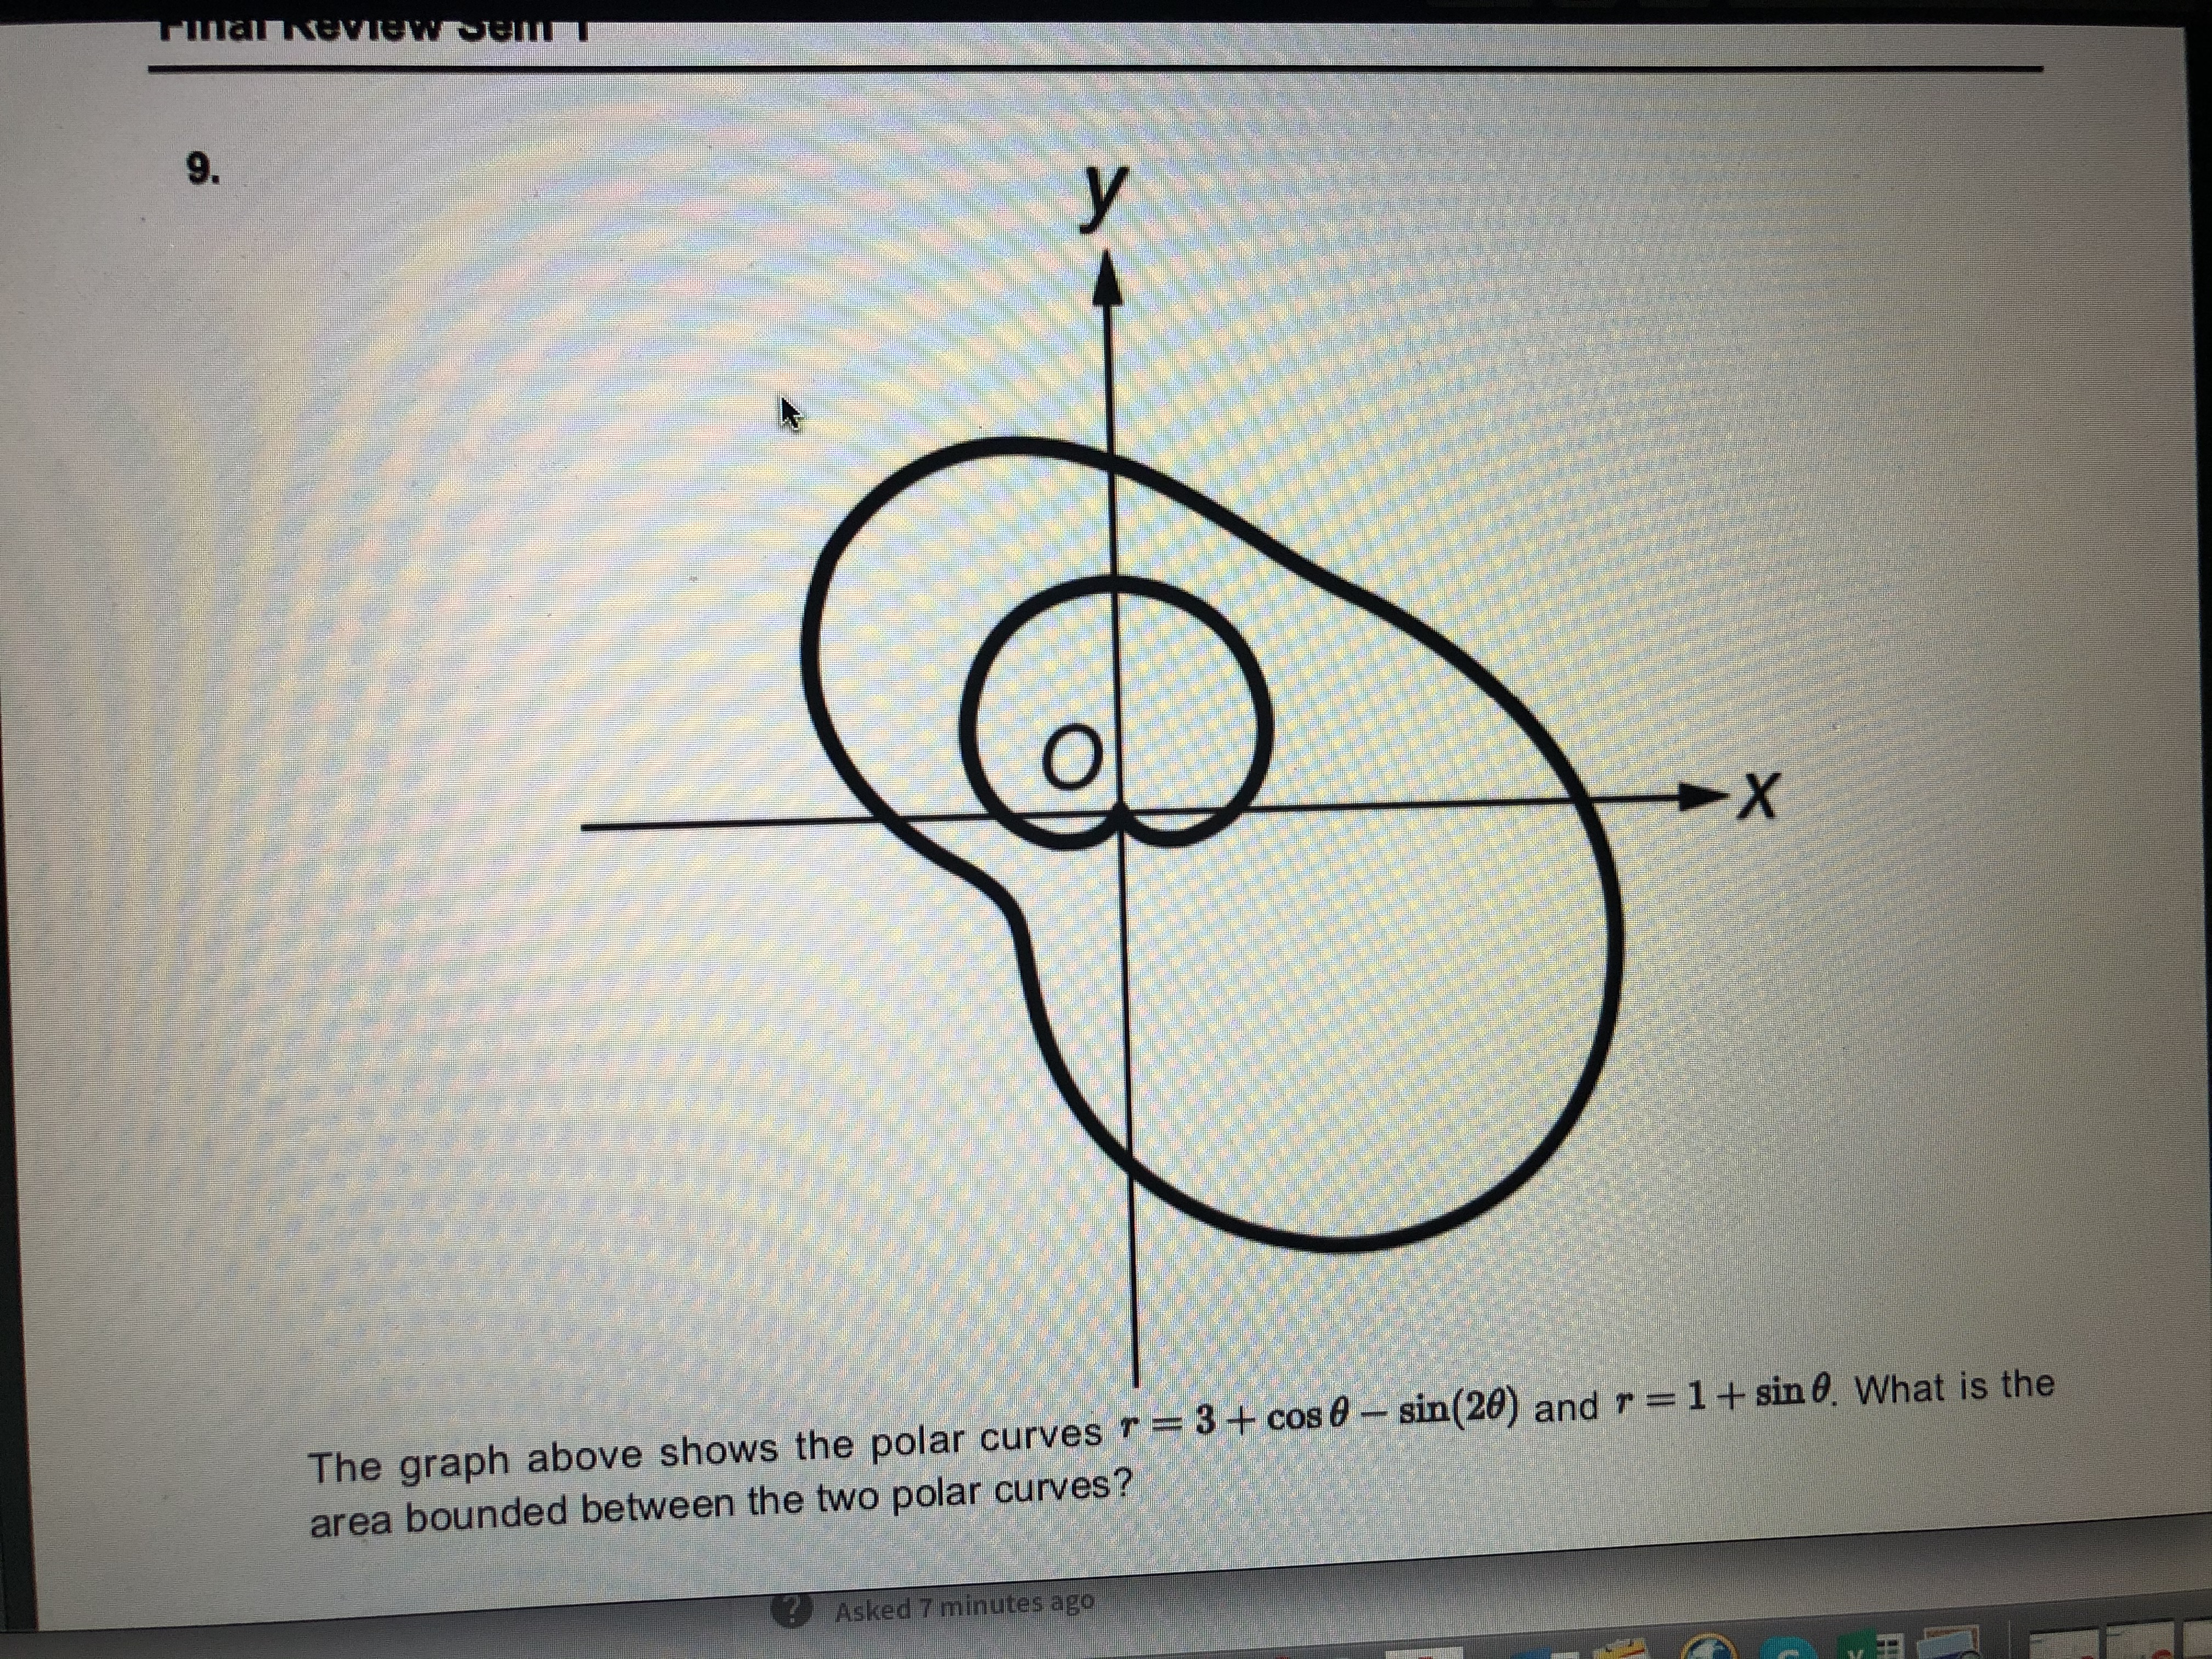 MALAAVIRU 9. The graph above shows the polar curves r=3+ cos 0- sin(20) and r=1+sin 0. What is the area bounded between the two polar curves? Asked 7 minutes ago